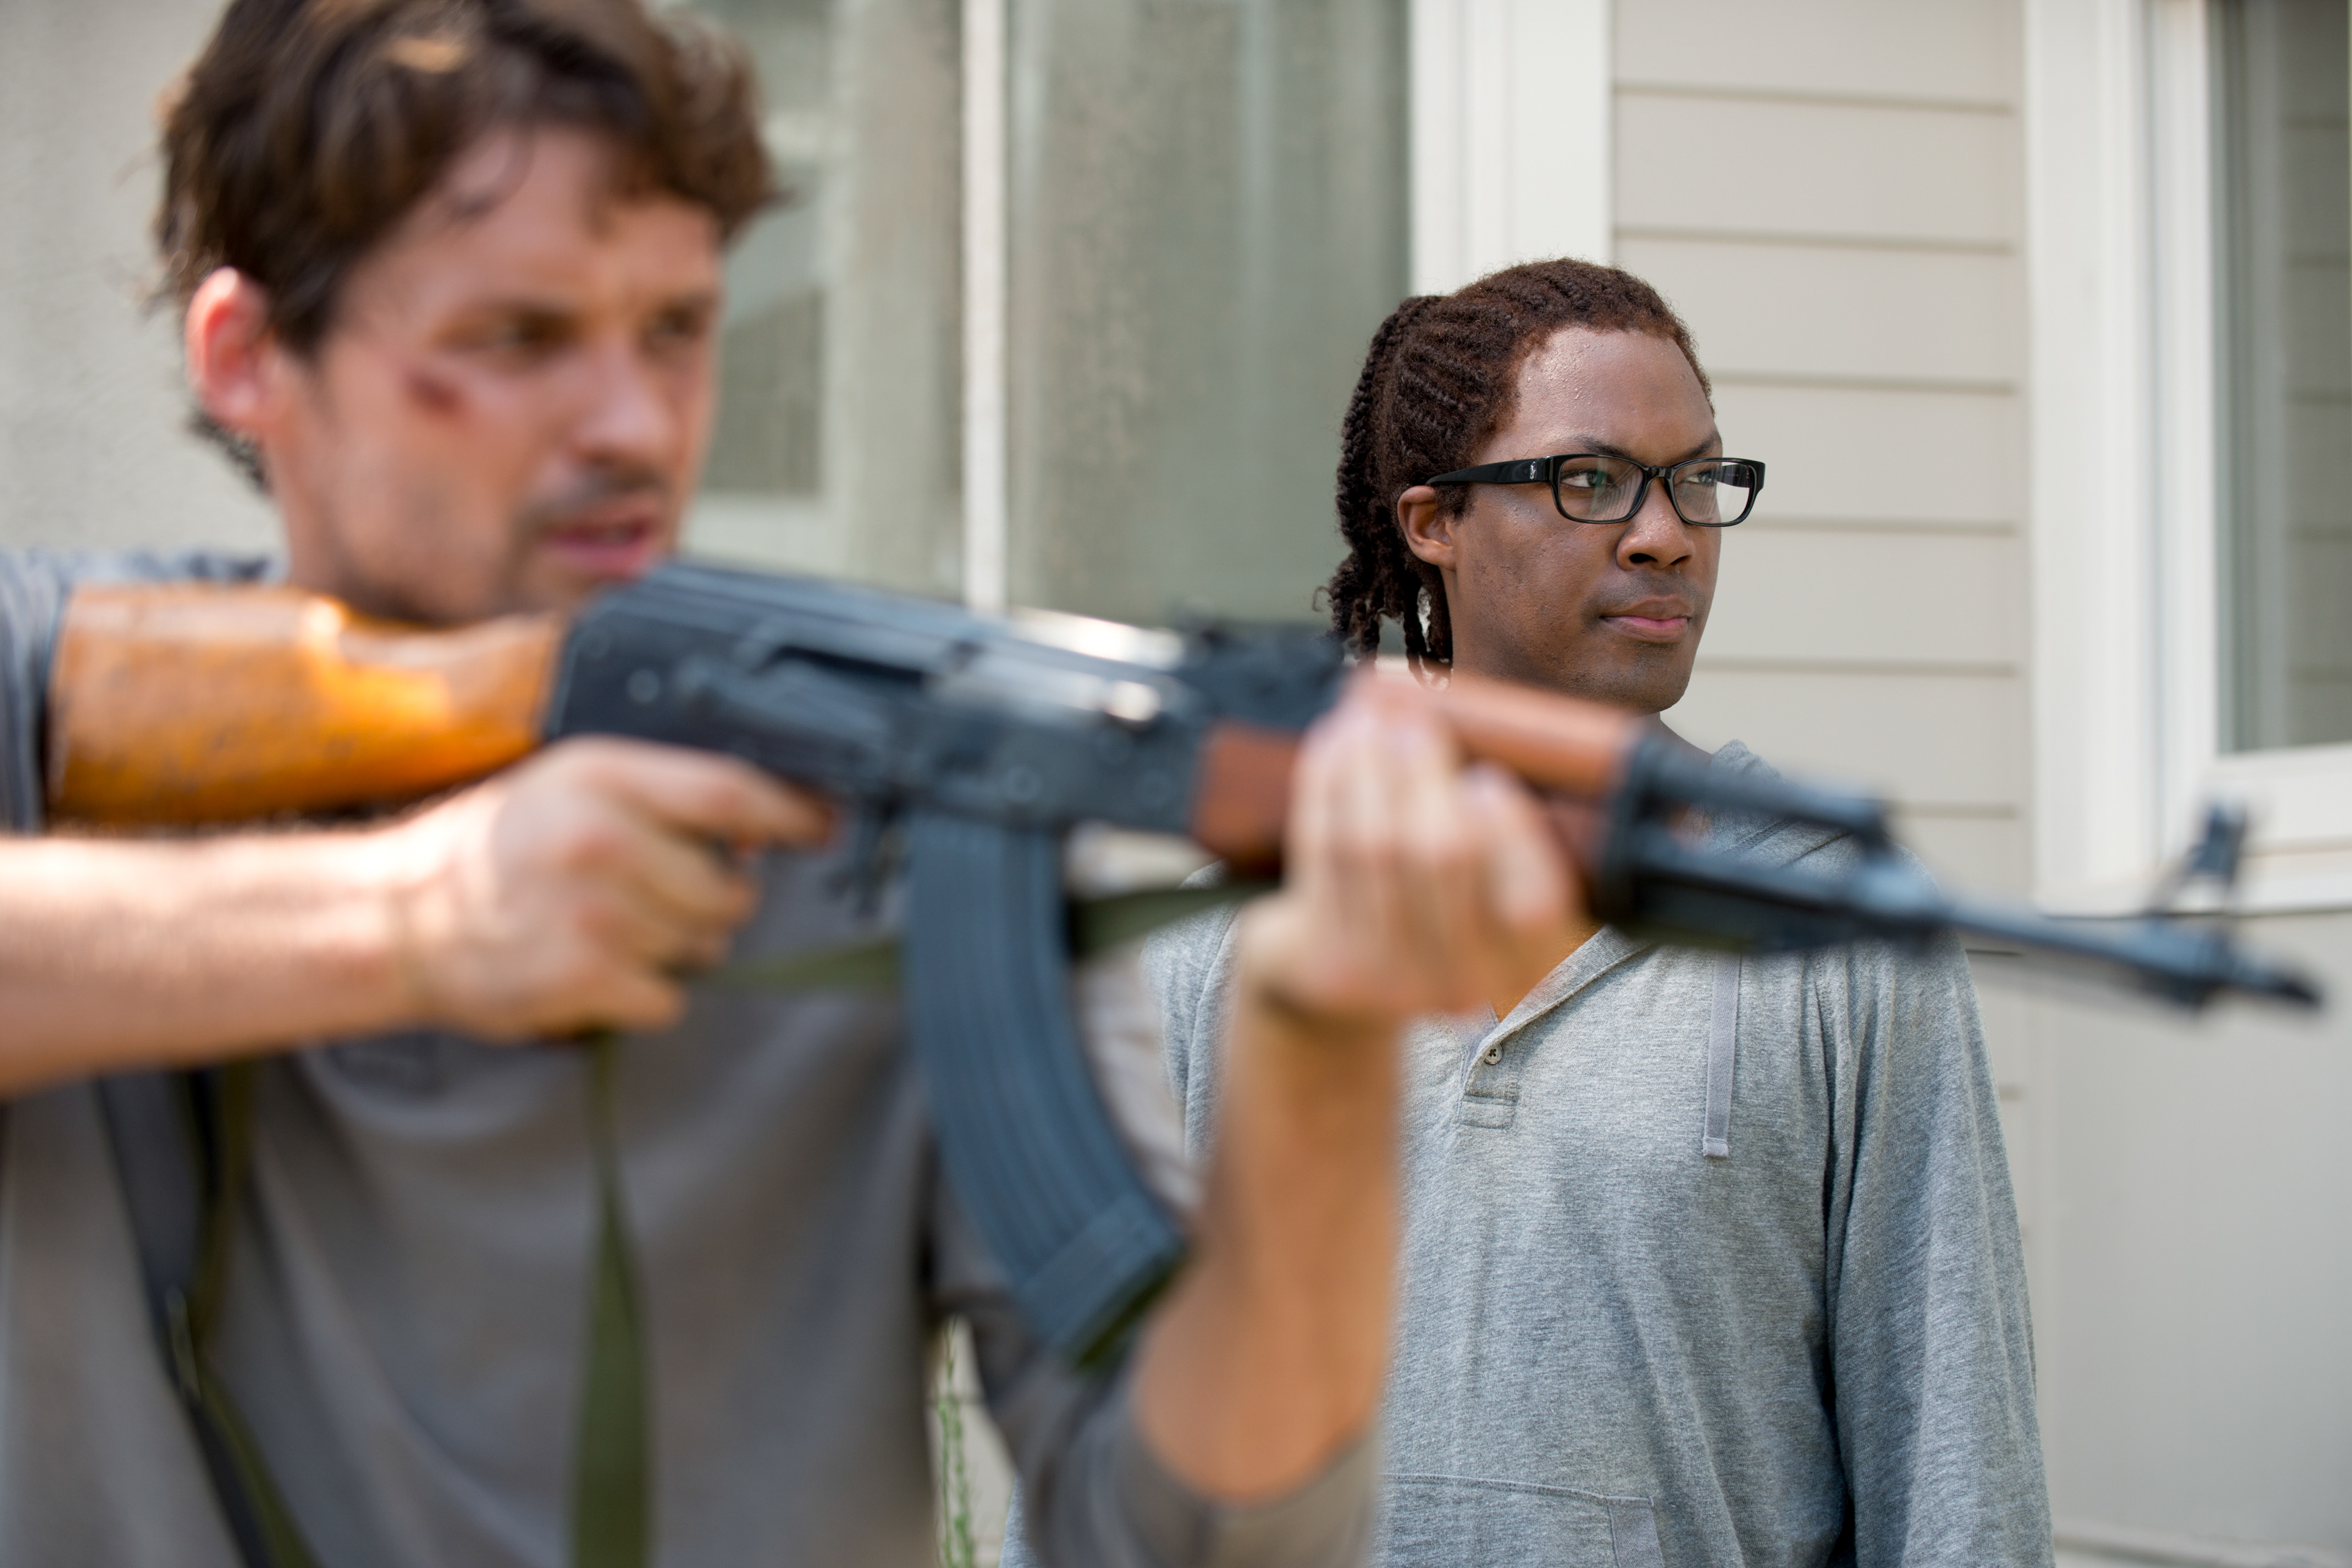 Austin Nichols as Spencer Monroe and Corey Hawkins as Heath - The Walking Dead